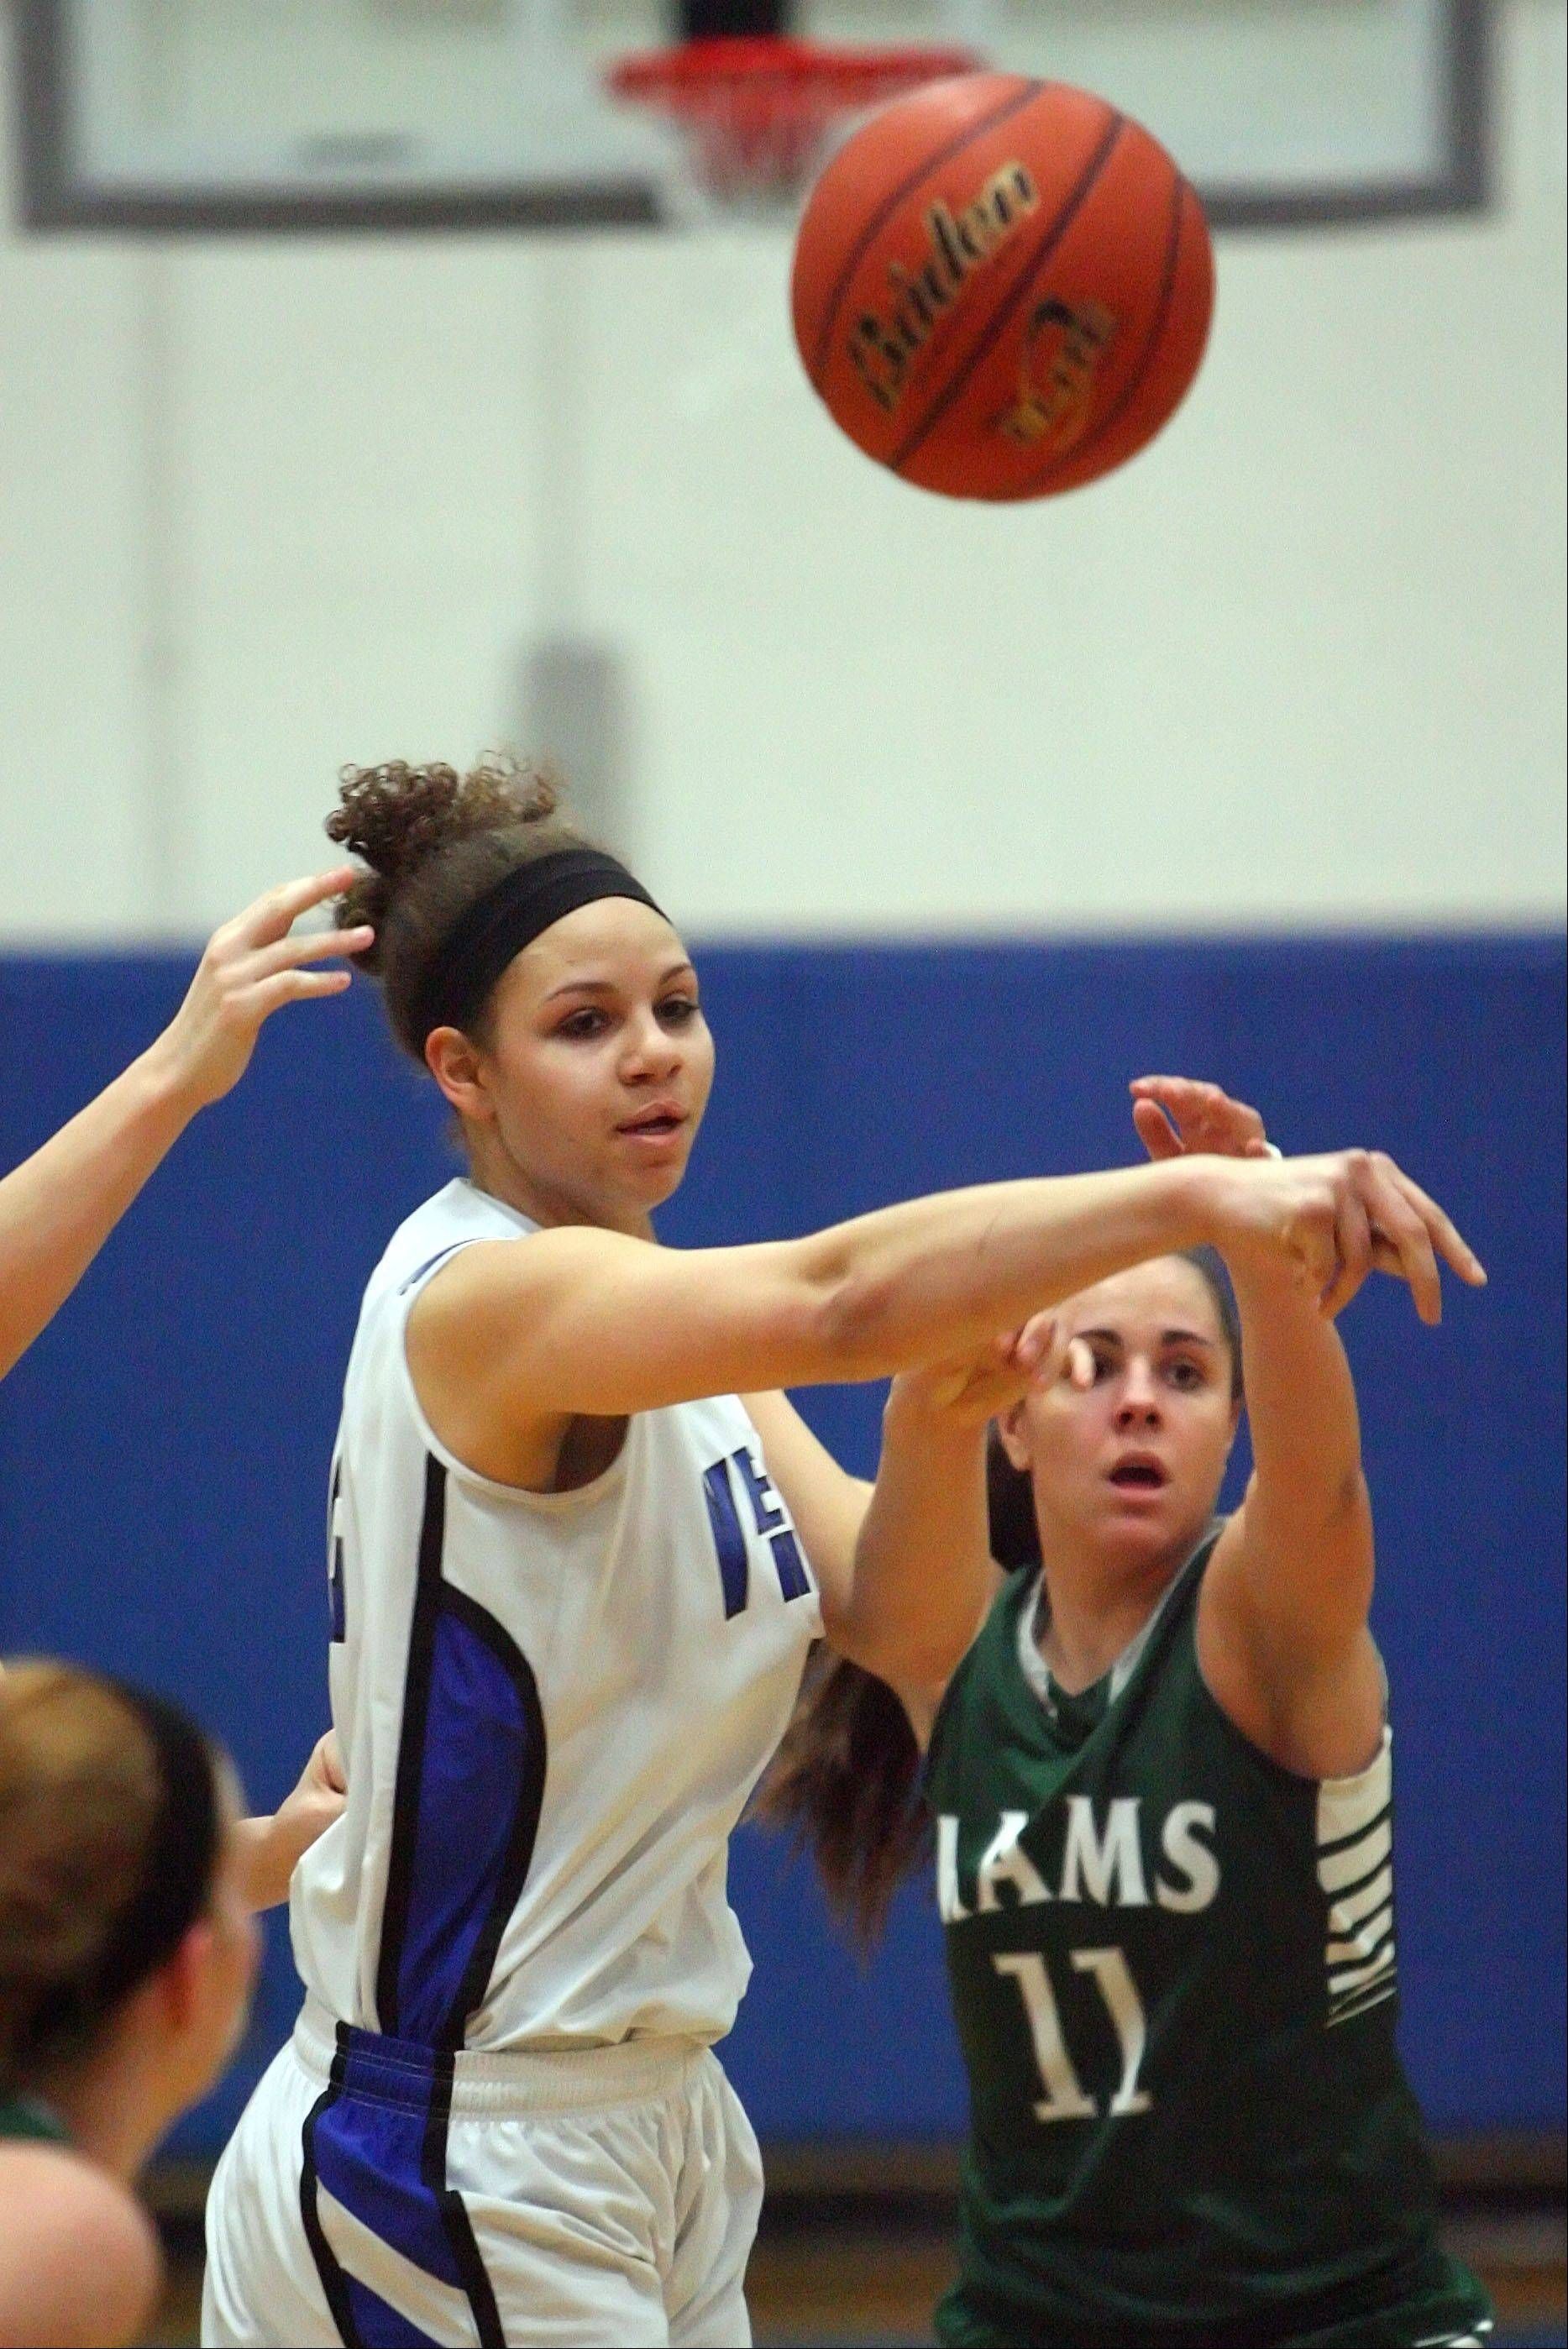 Vernon Hills' left, passes around Grayslake Central's Carson Sparkman during Class 3A girls basketball sectional semifinal play at Vernon Hills on Tuesday.